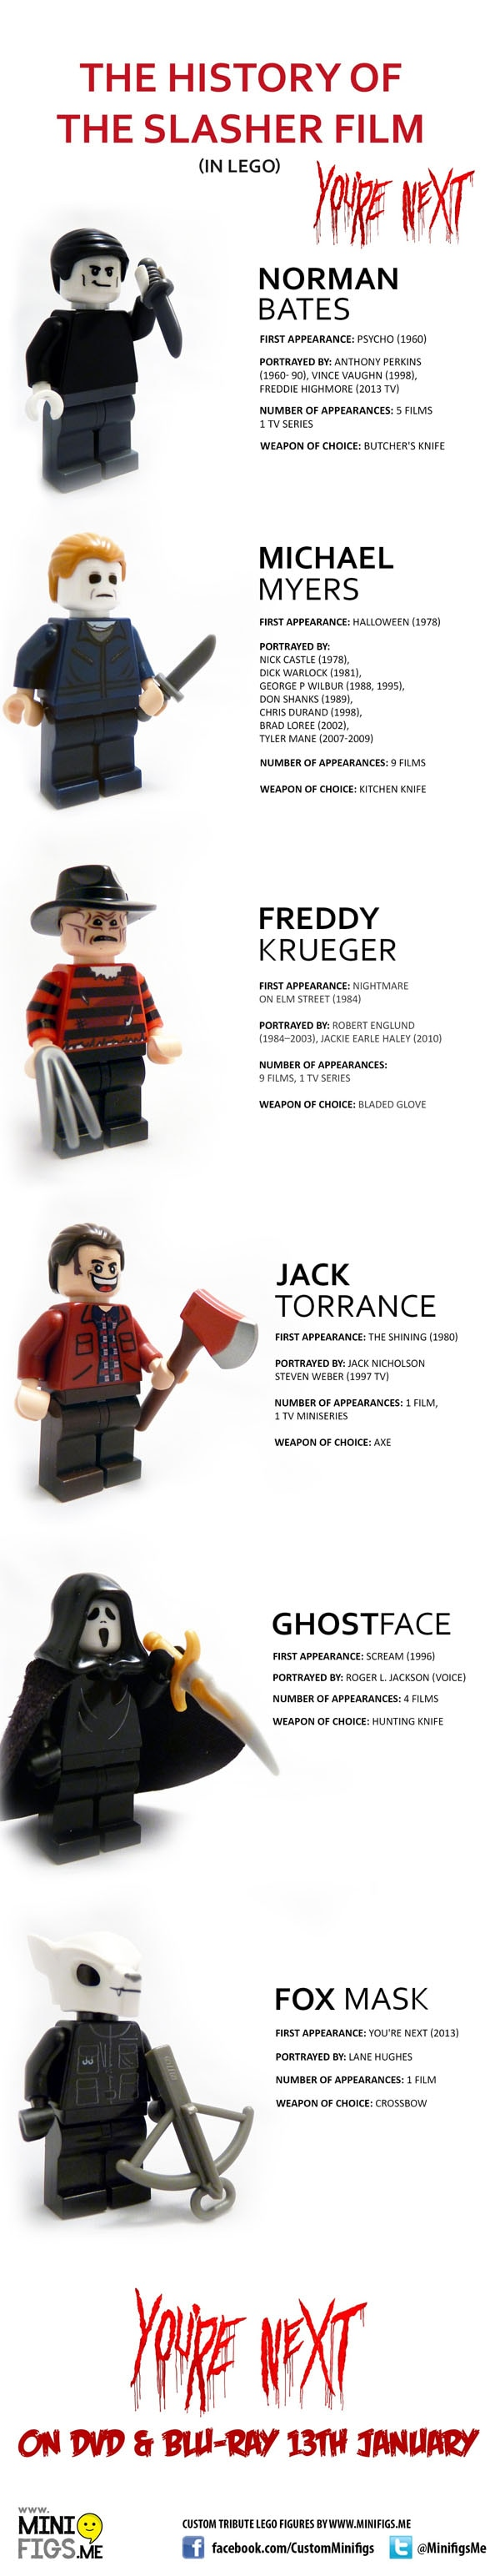 lego history of slasher films - LEGO Slasher Icons Celebrate You're Next Home Video Release